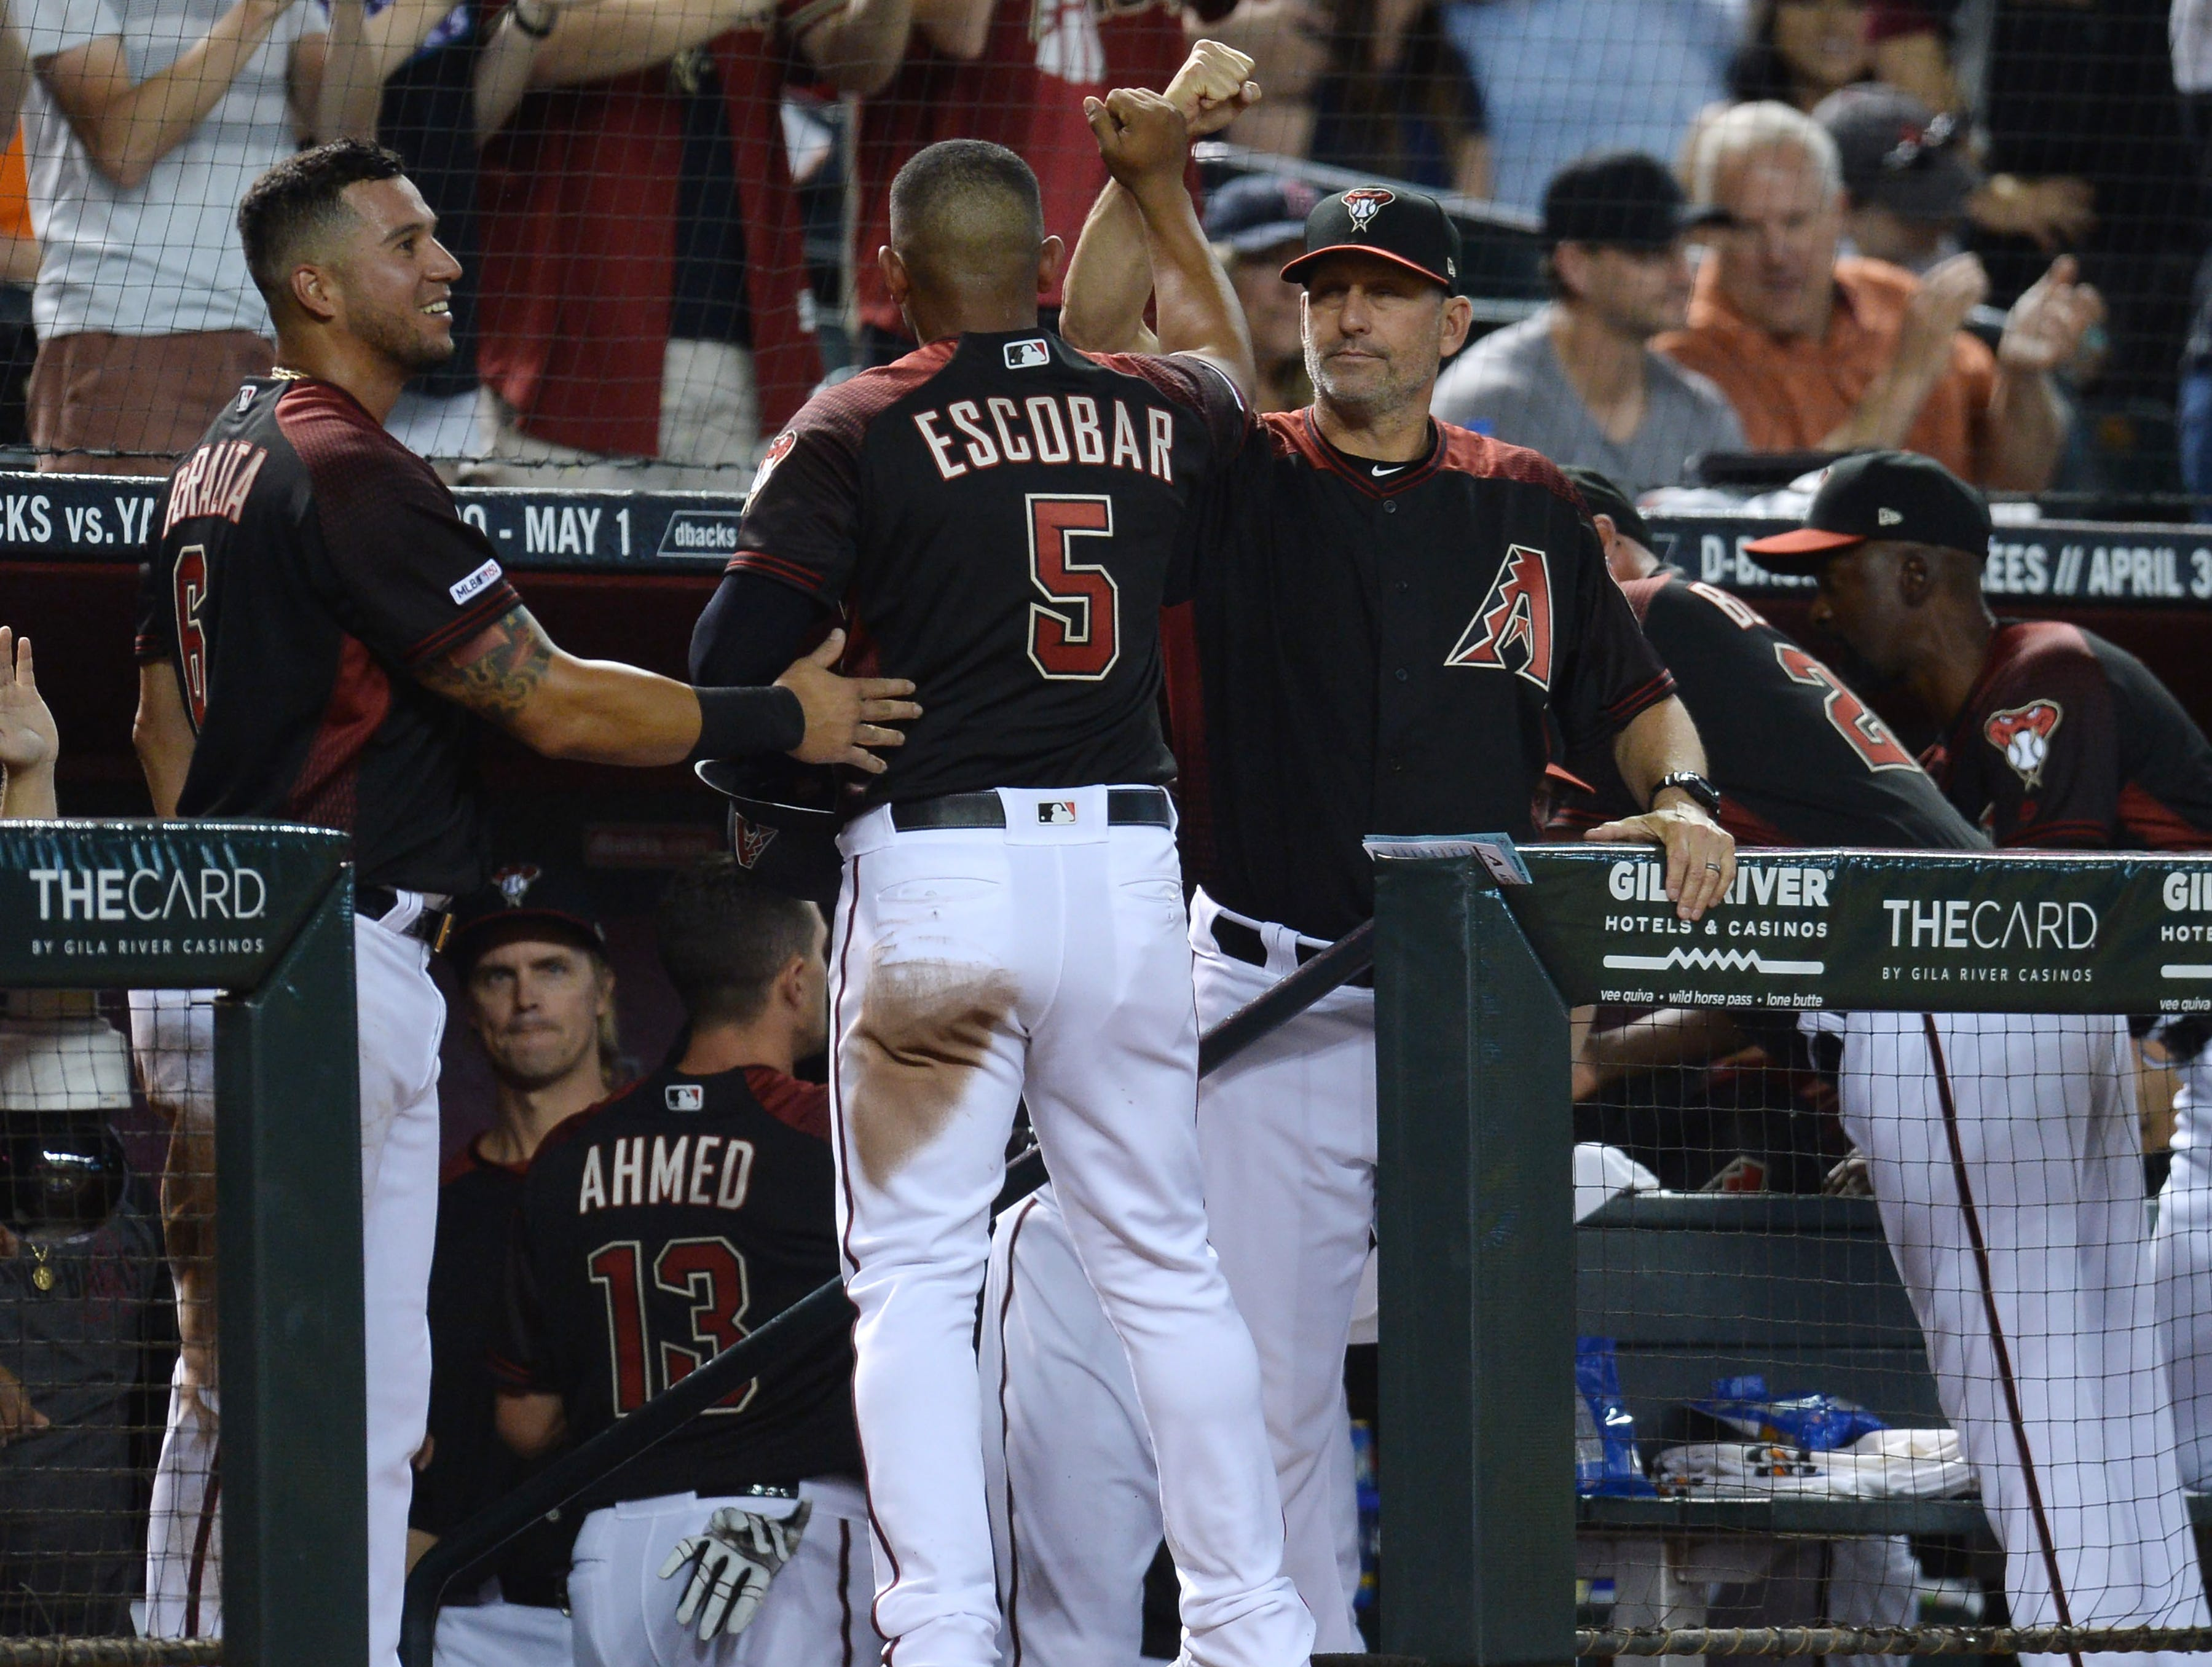 Apr 6, 2019; Phoenix, AZ, USA; Arizona Diamondbacks third baseman Eduardo Escobar (5) celebrates with Arizona Diamondbacks manager Torey Lovullo (17) after scoring a run against the Boston Red Sox during the second inning at Chase Field. Mandatory Credit: Joe Camporeale-USA TODAY Sports